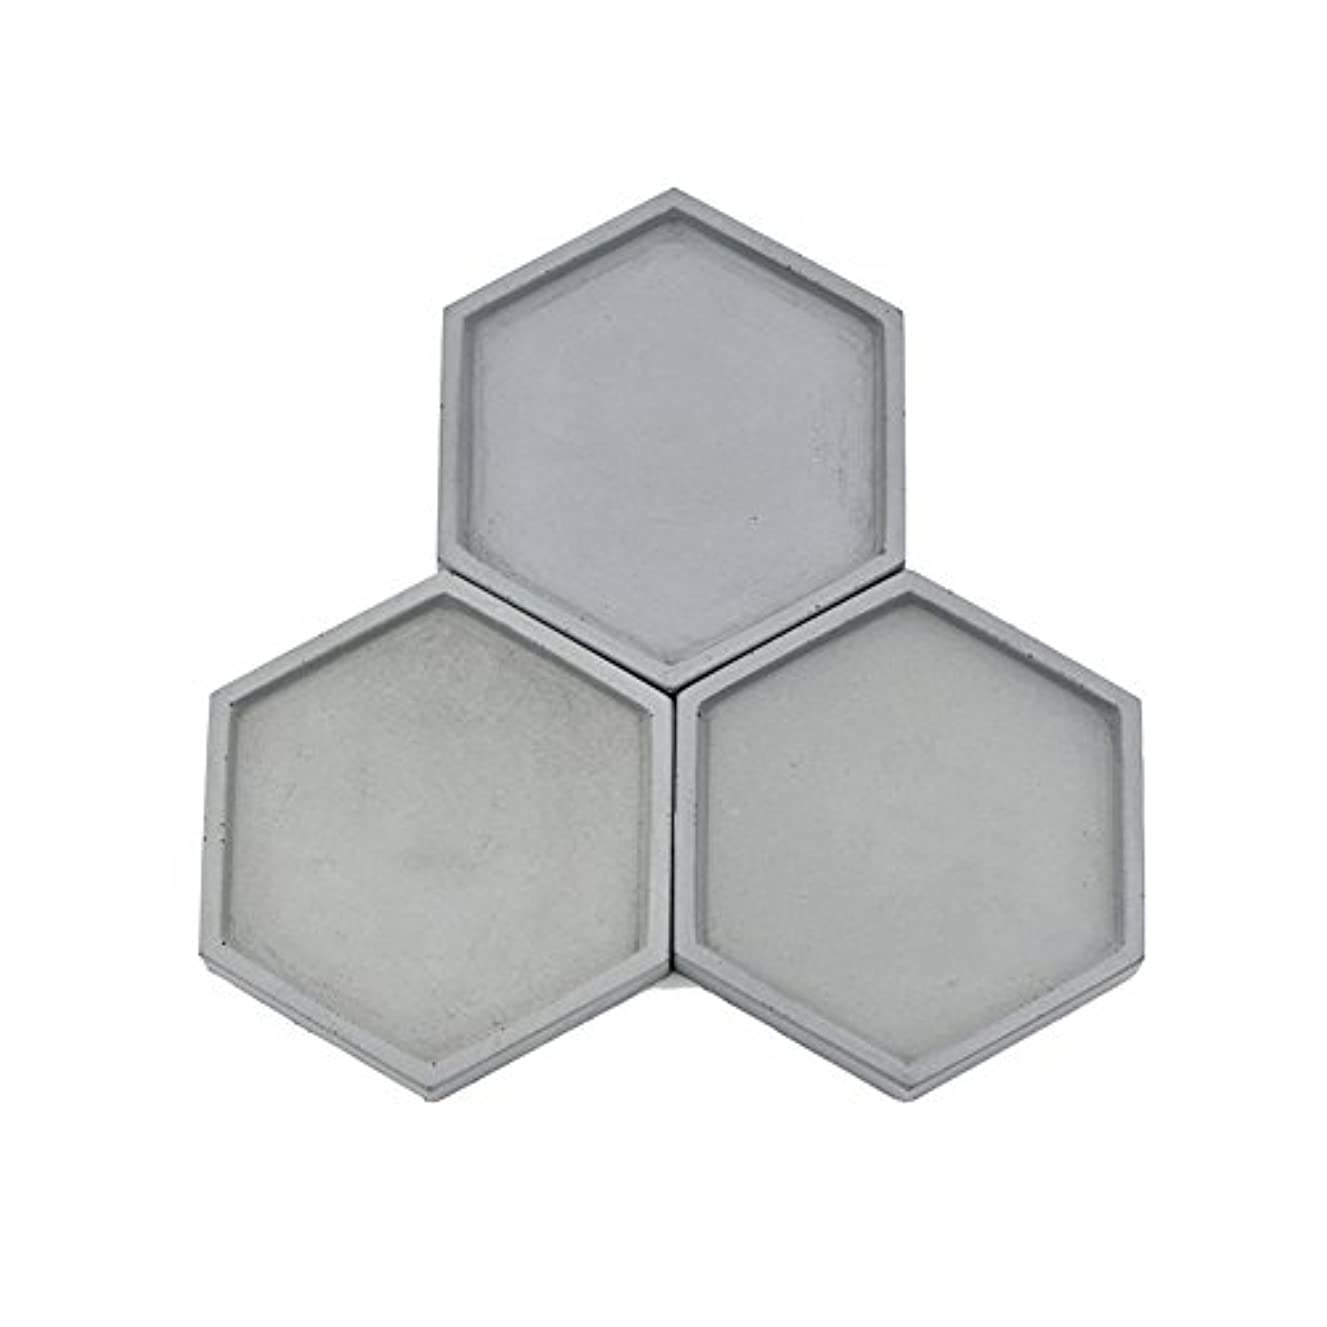 Hexagon Concrete Tray Mold Cement Plate Mold Silicone Coaster Mold,Molds for Casting